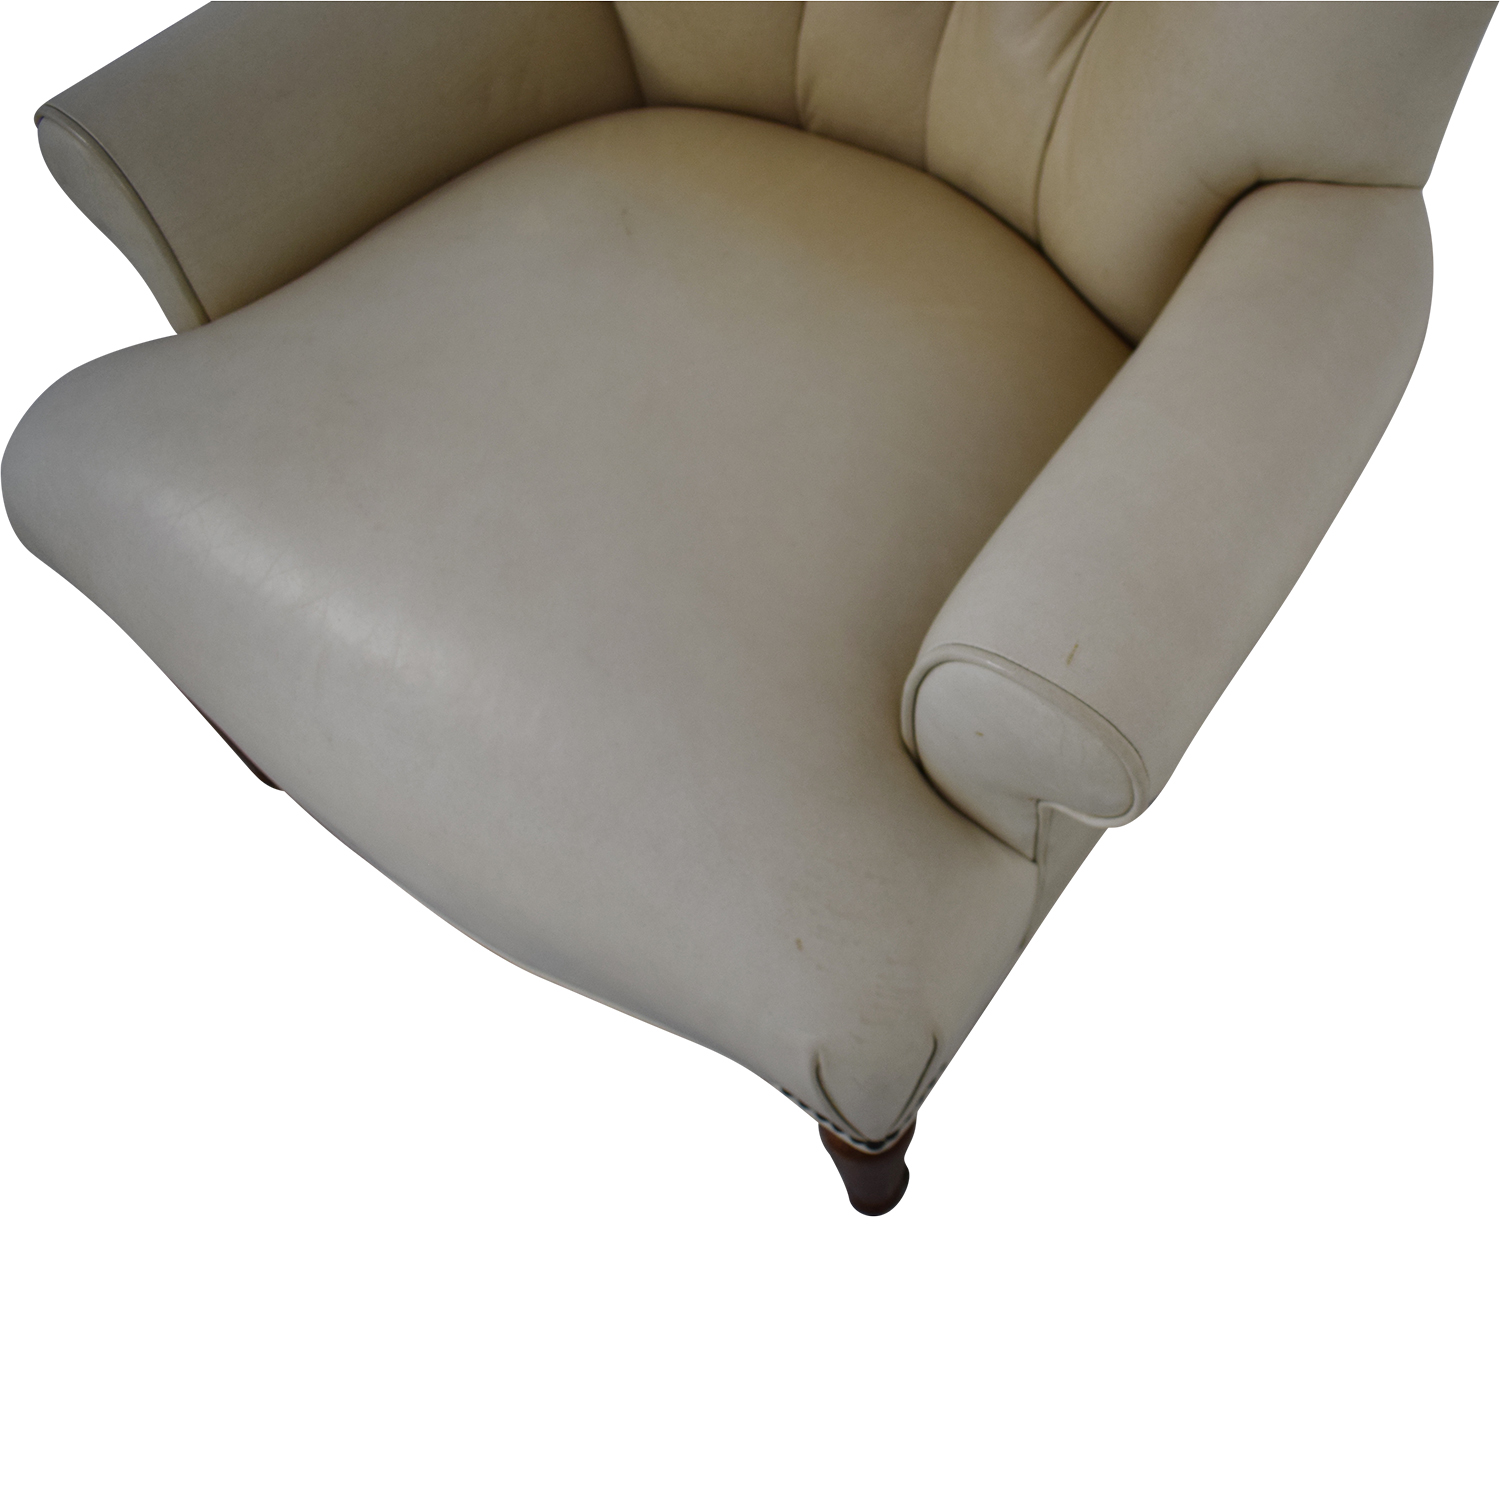 Tufted Accent Chair for sale